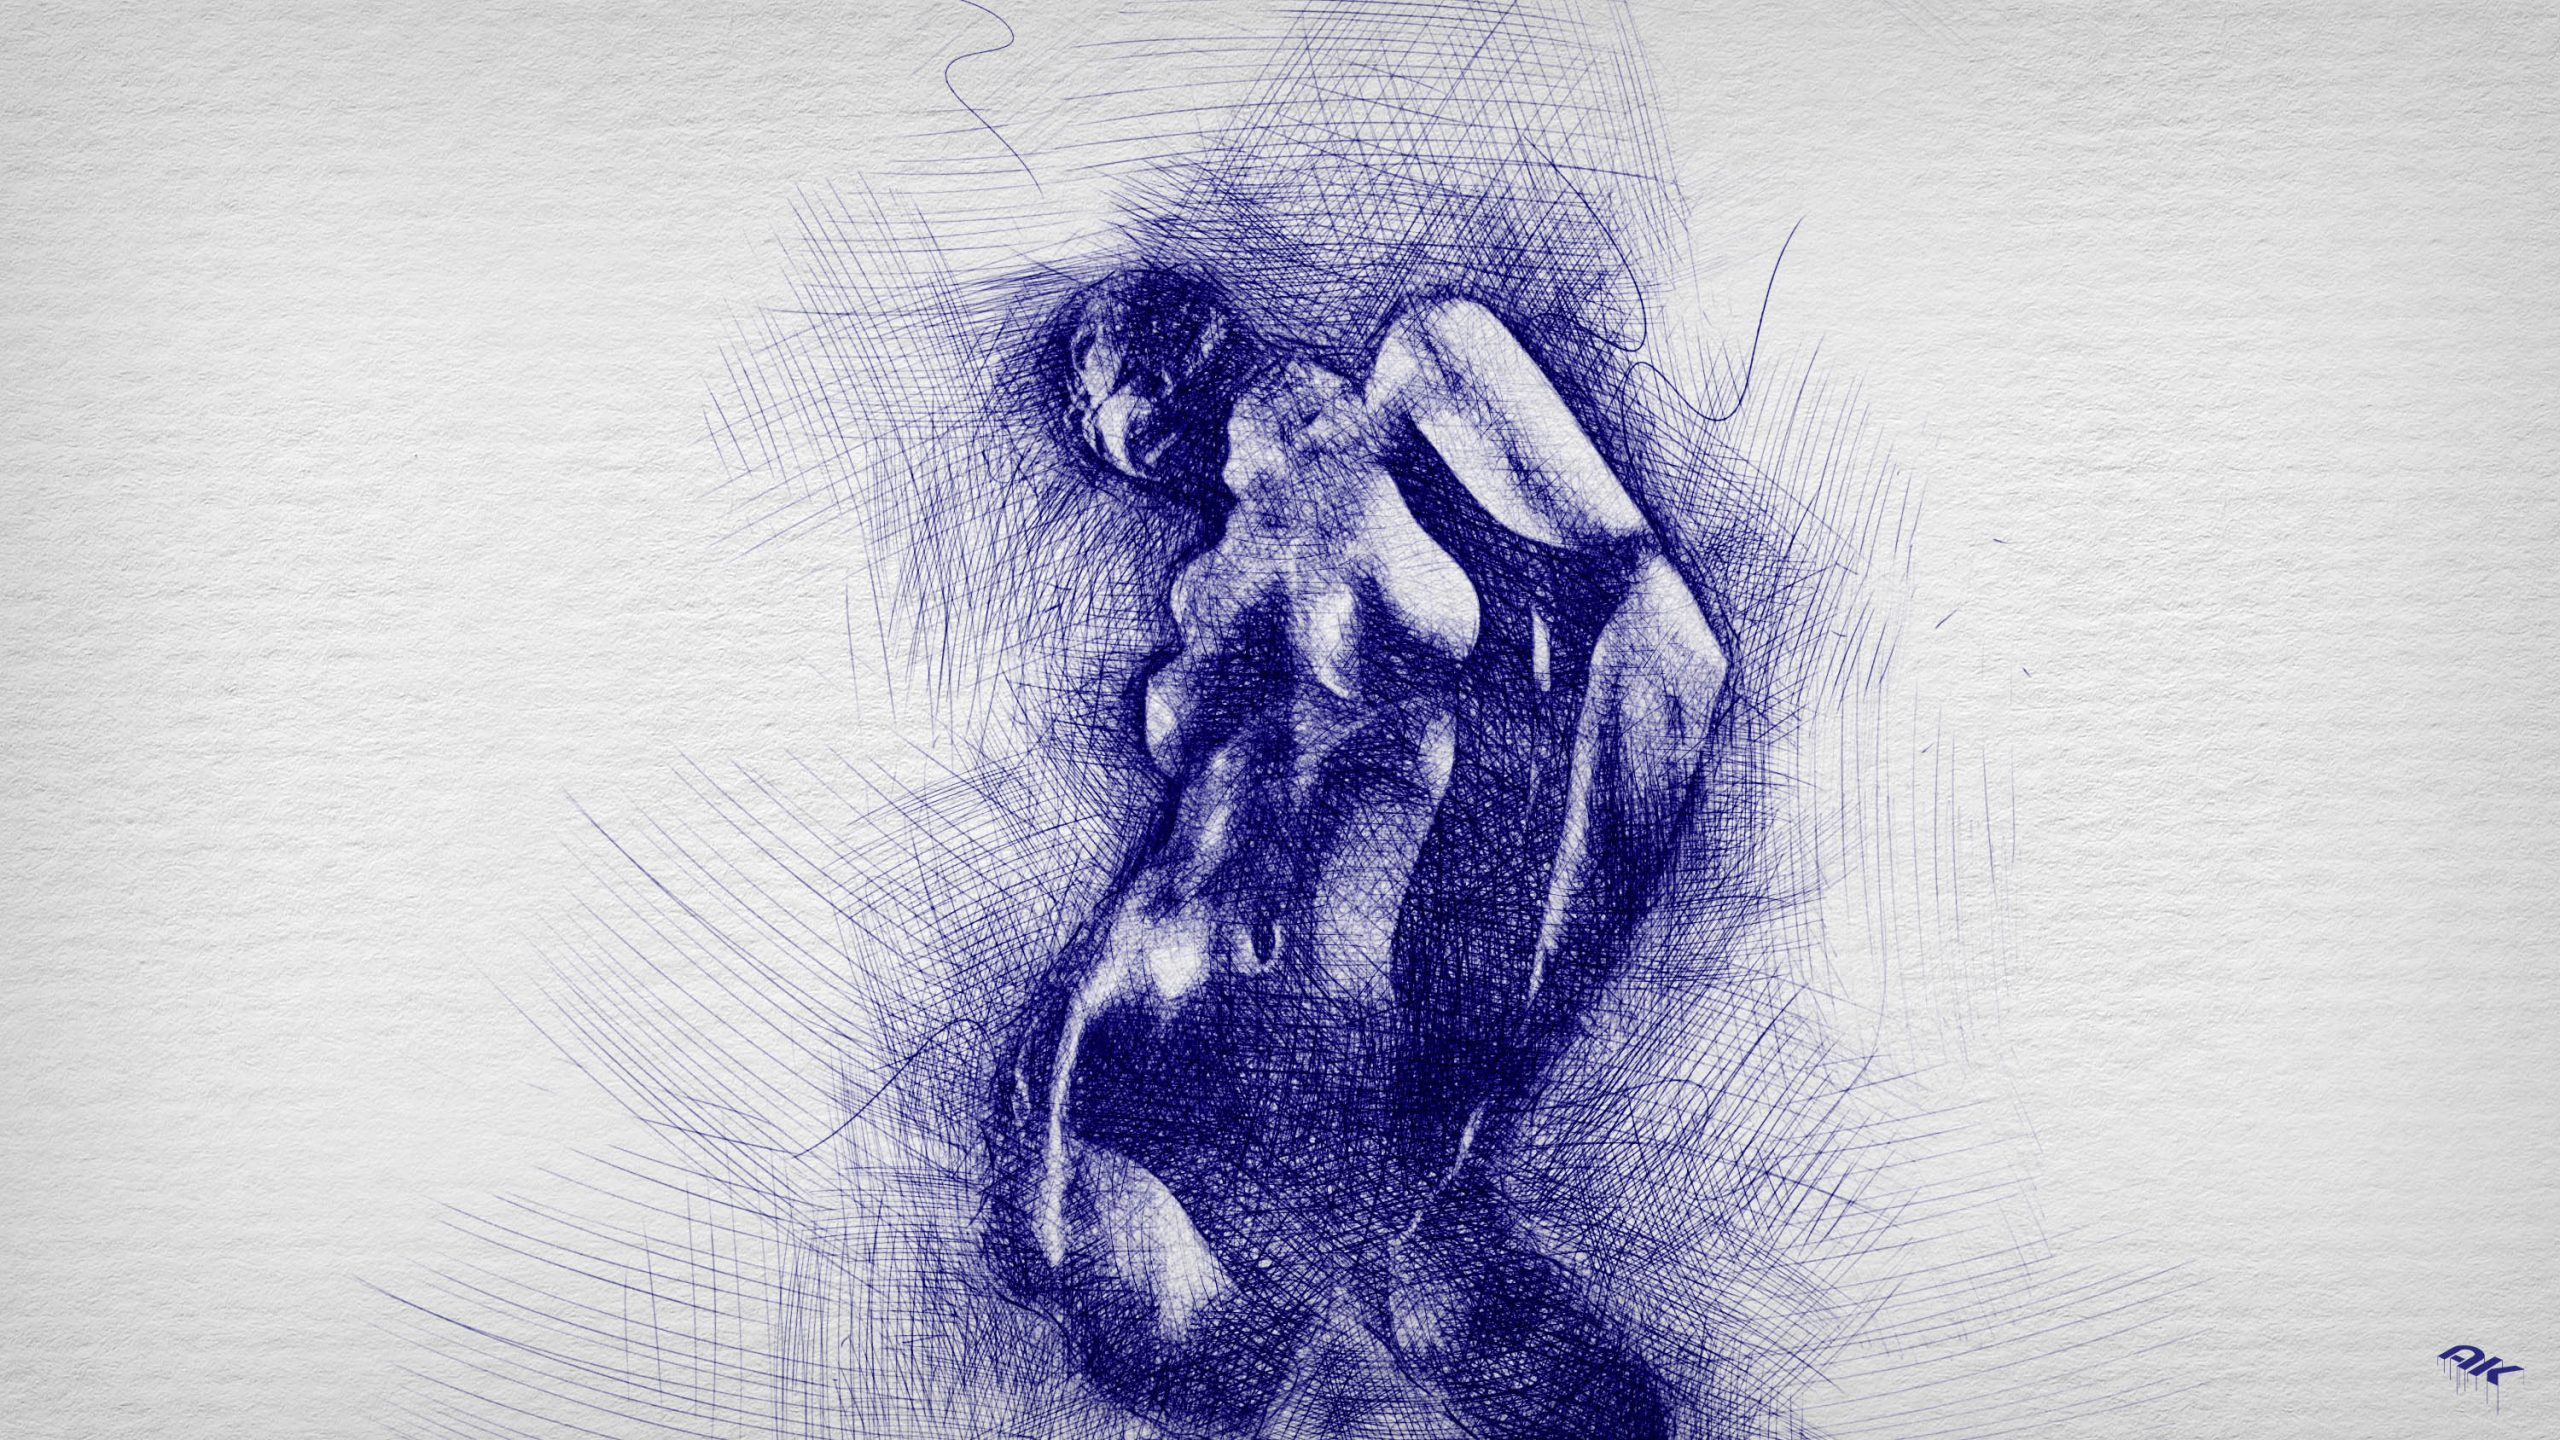 life-drawing-series-5-image-8-copyright-andrew-knutt